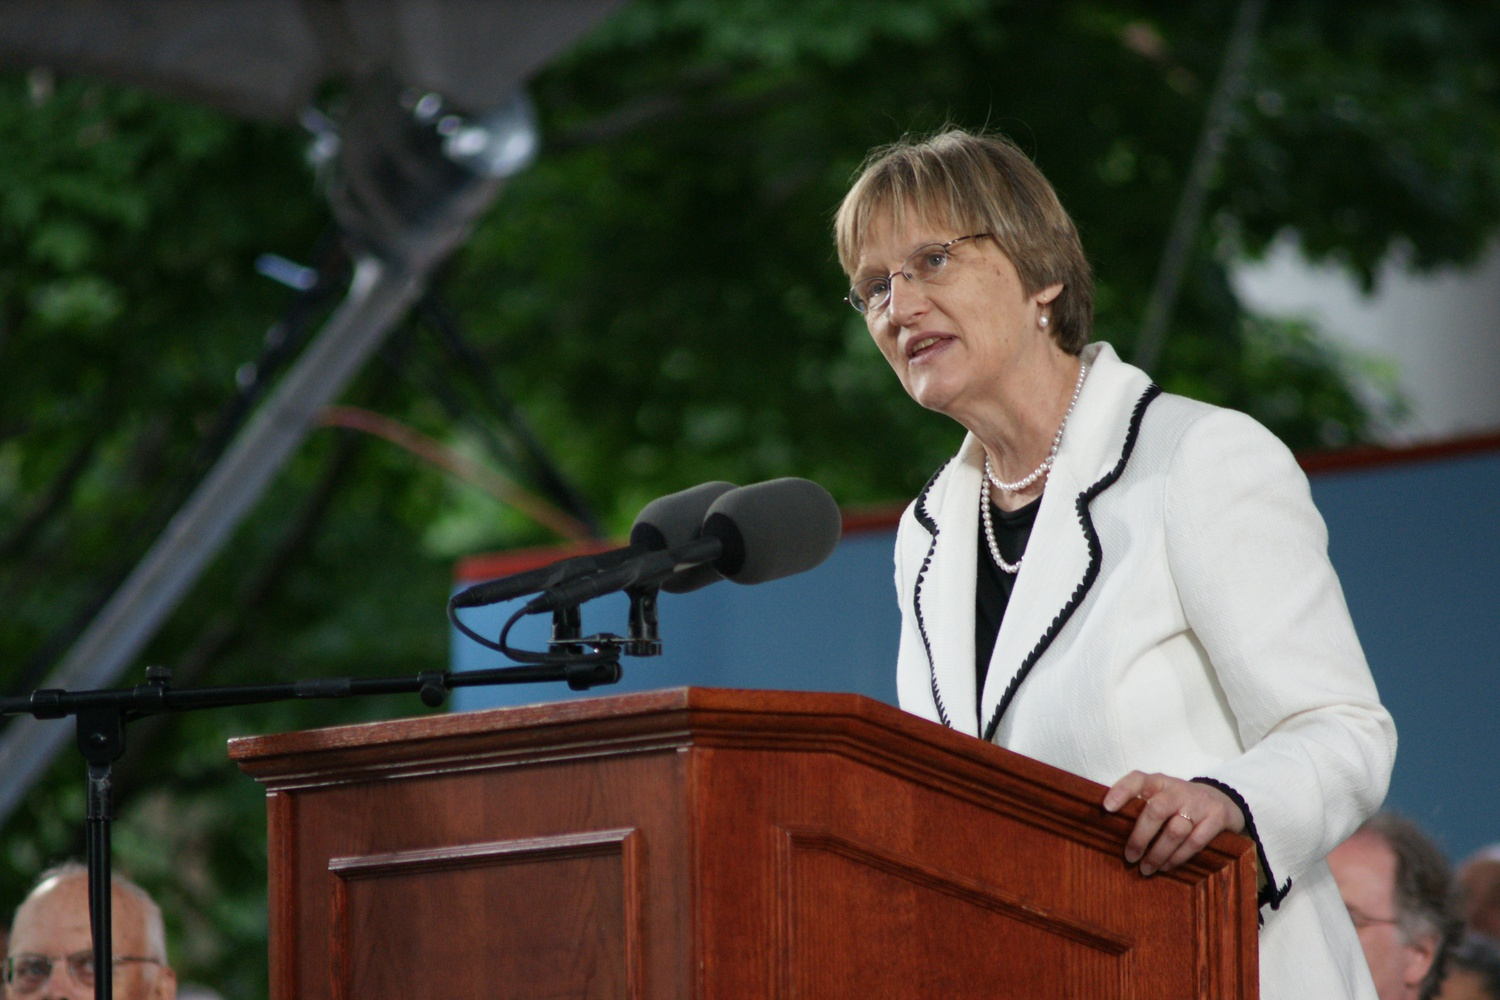 At the annual meeting of the Harvard Alumni Association at Harvard University's 2008 Commencement ceremonies, former University President Drew G. Faust spoke about the value of college endowments.